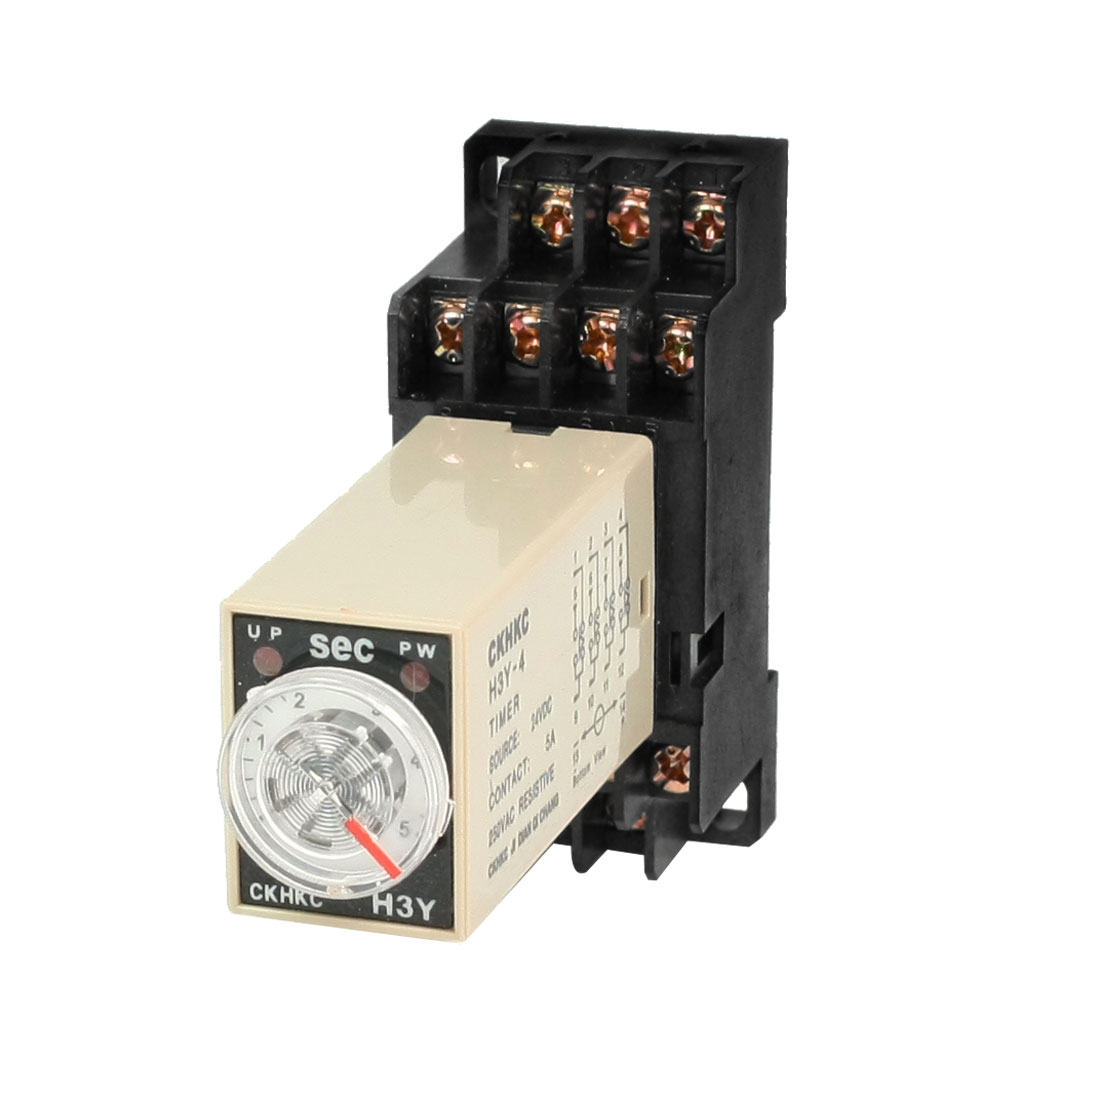 H3Y-4 24VDC 4PDT 5 Seconds 5S 14P Terminals Delay Timer Time Relay w Socket